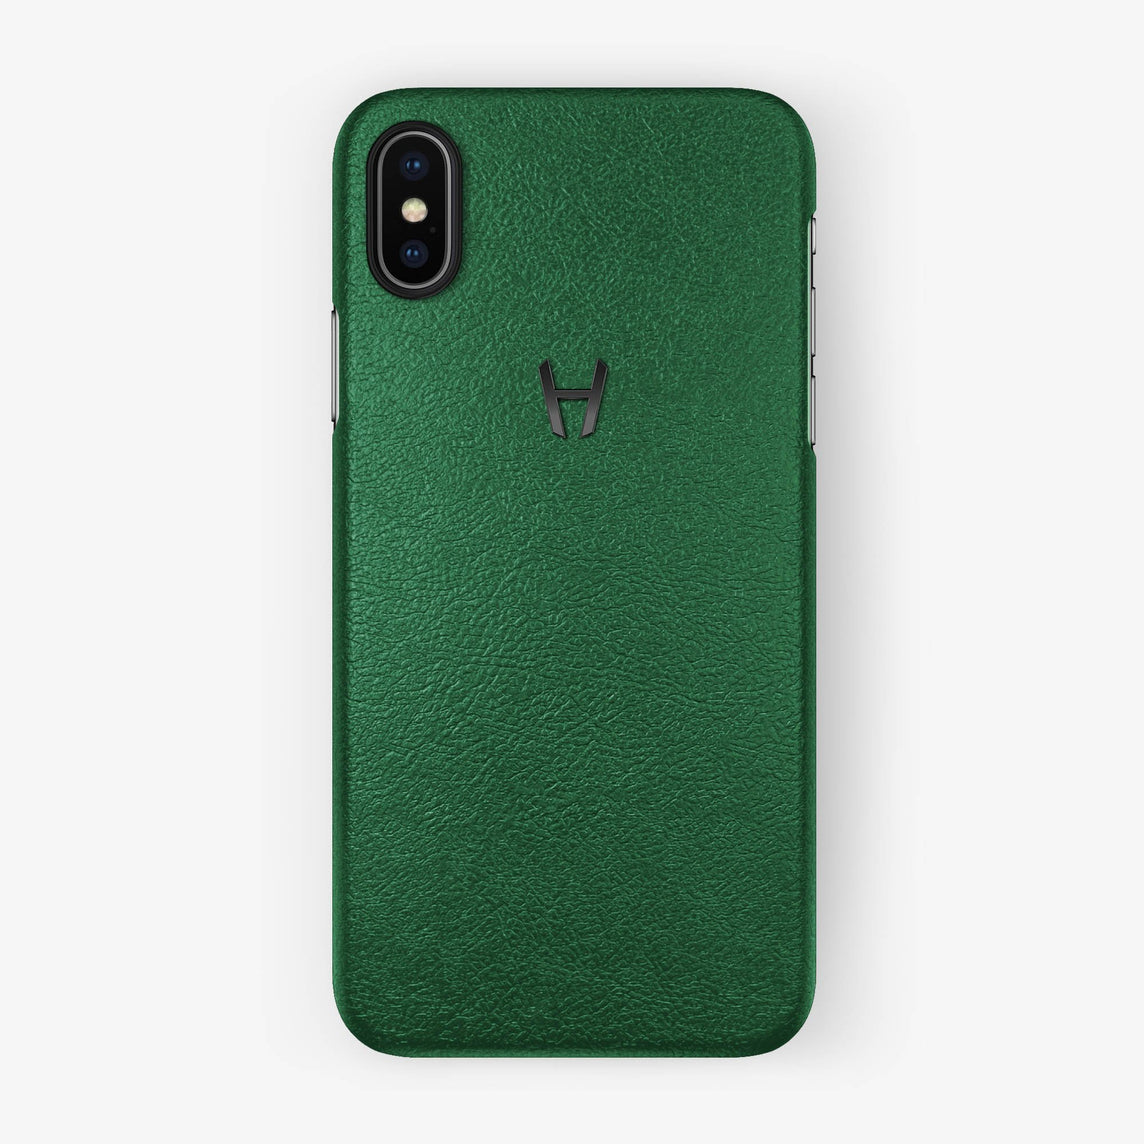 Green Calfskin iPhone Case for iPhone X finishing black - Hadoro Luxury Cases